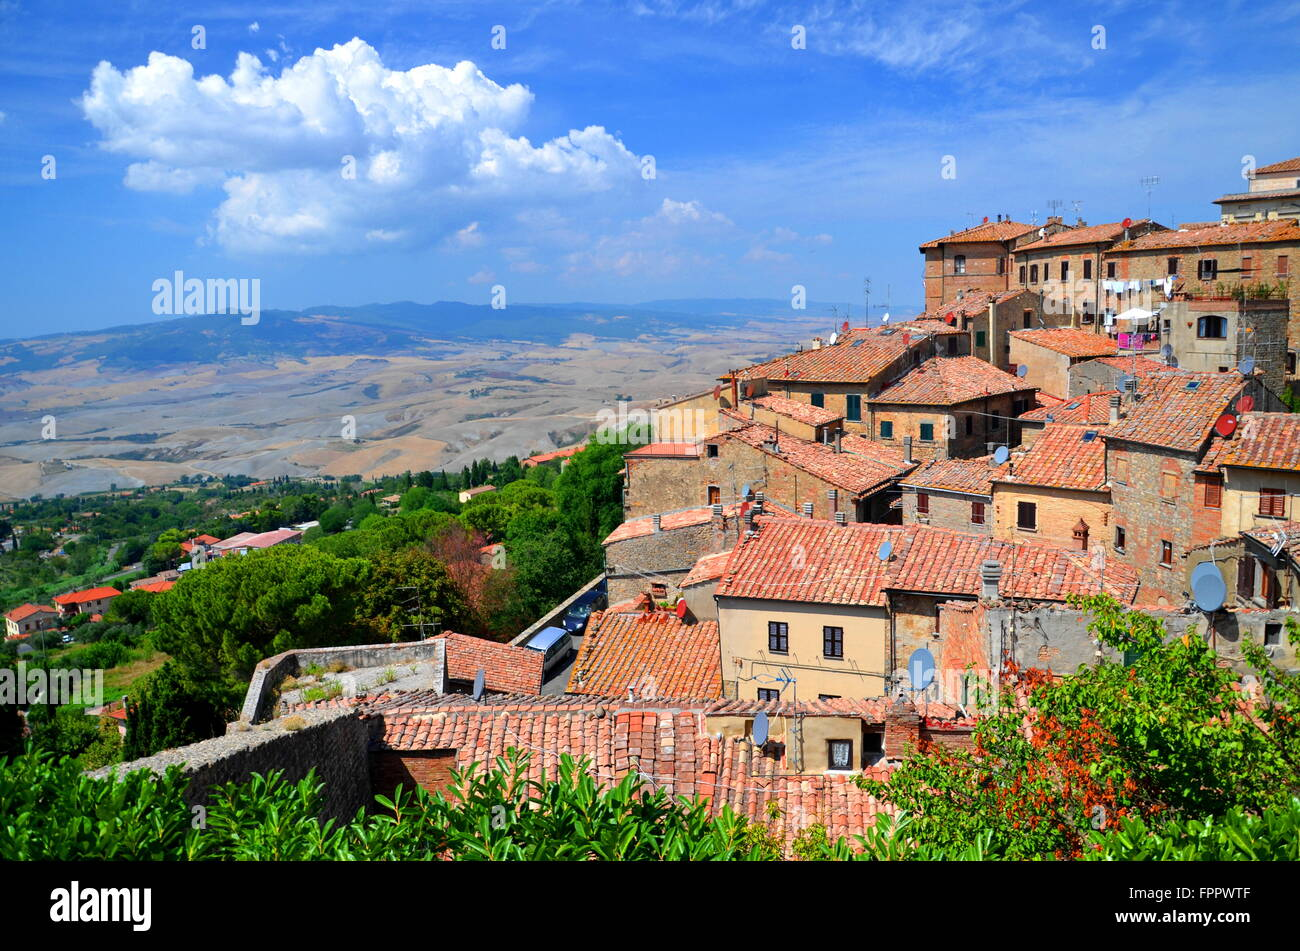 Spectacular view of the old town of Volterra in Tuscany, Italy - Stock Image